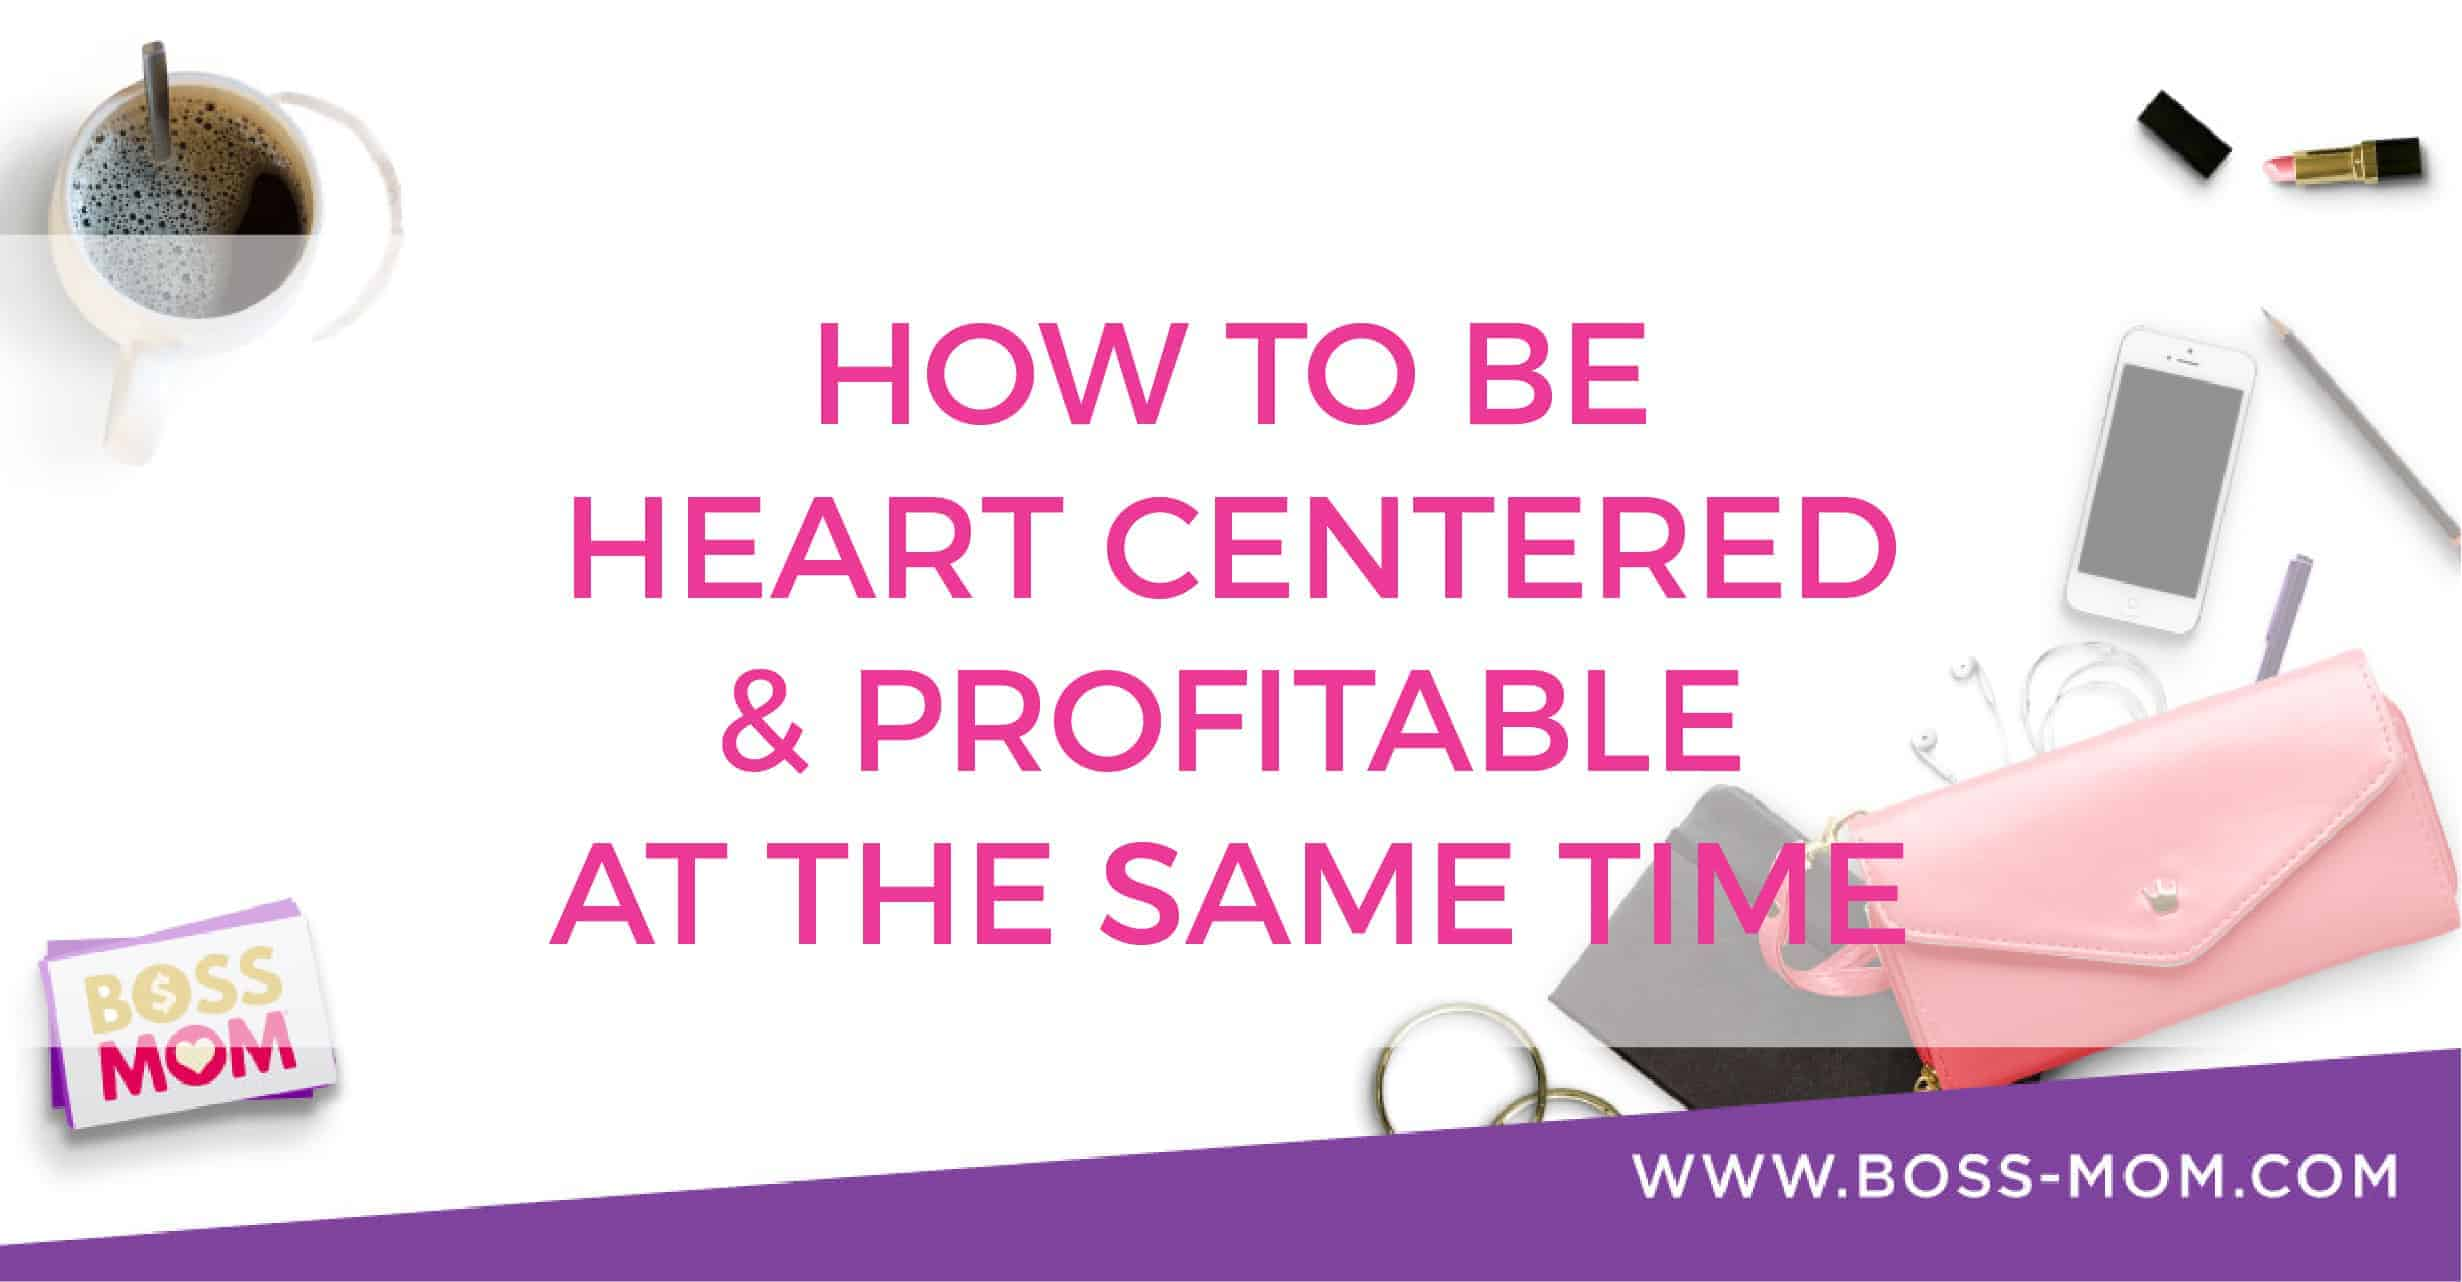 Episode 191: How to be Heart Centered & Profitable at the Same Time with Dana & NJ